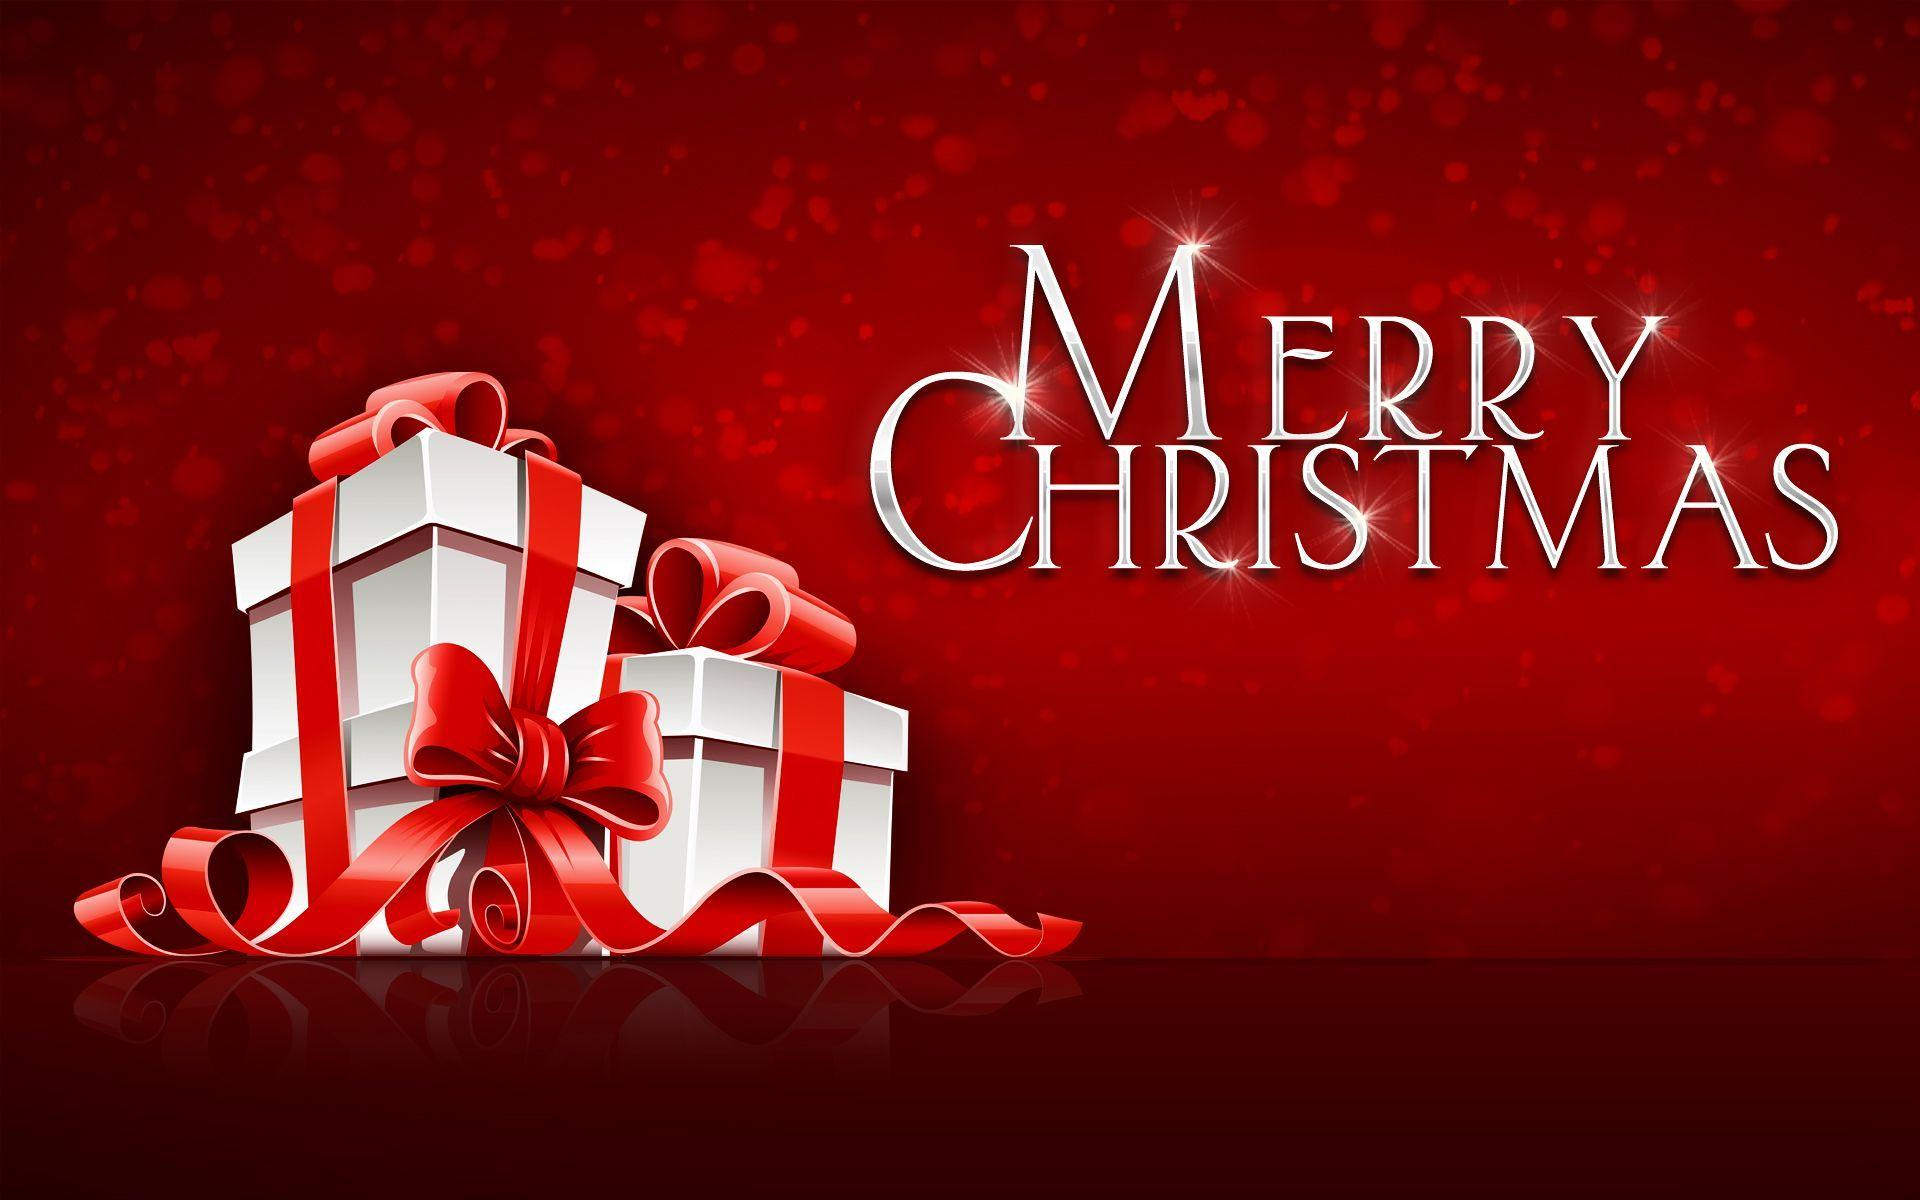 Merry Christmas Wallpapers 2017 - Wallpaper Cave